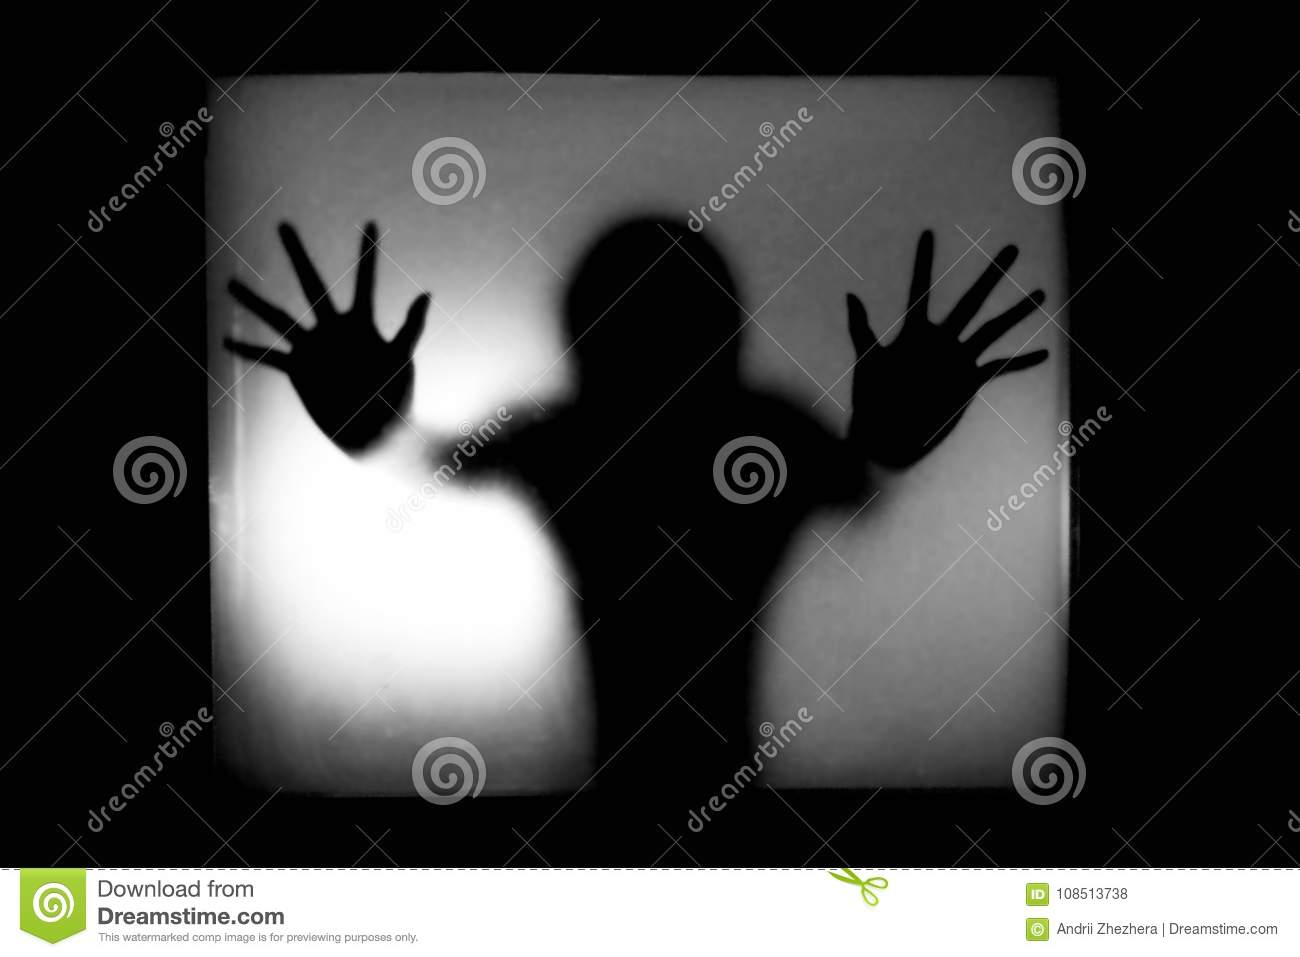 Silhouette of a man behind glass trying to escape in horror